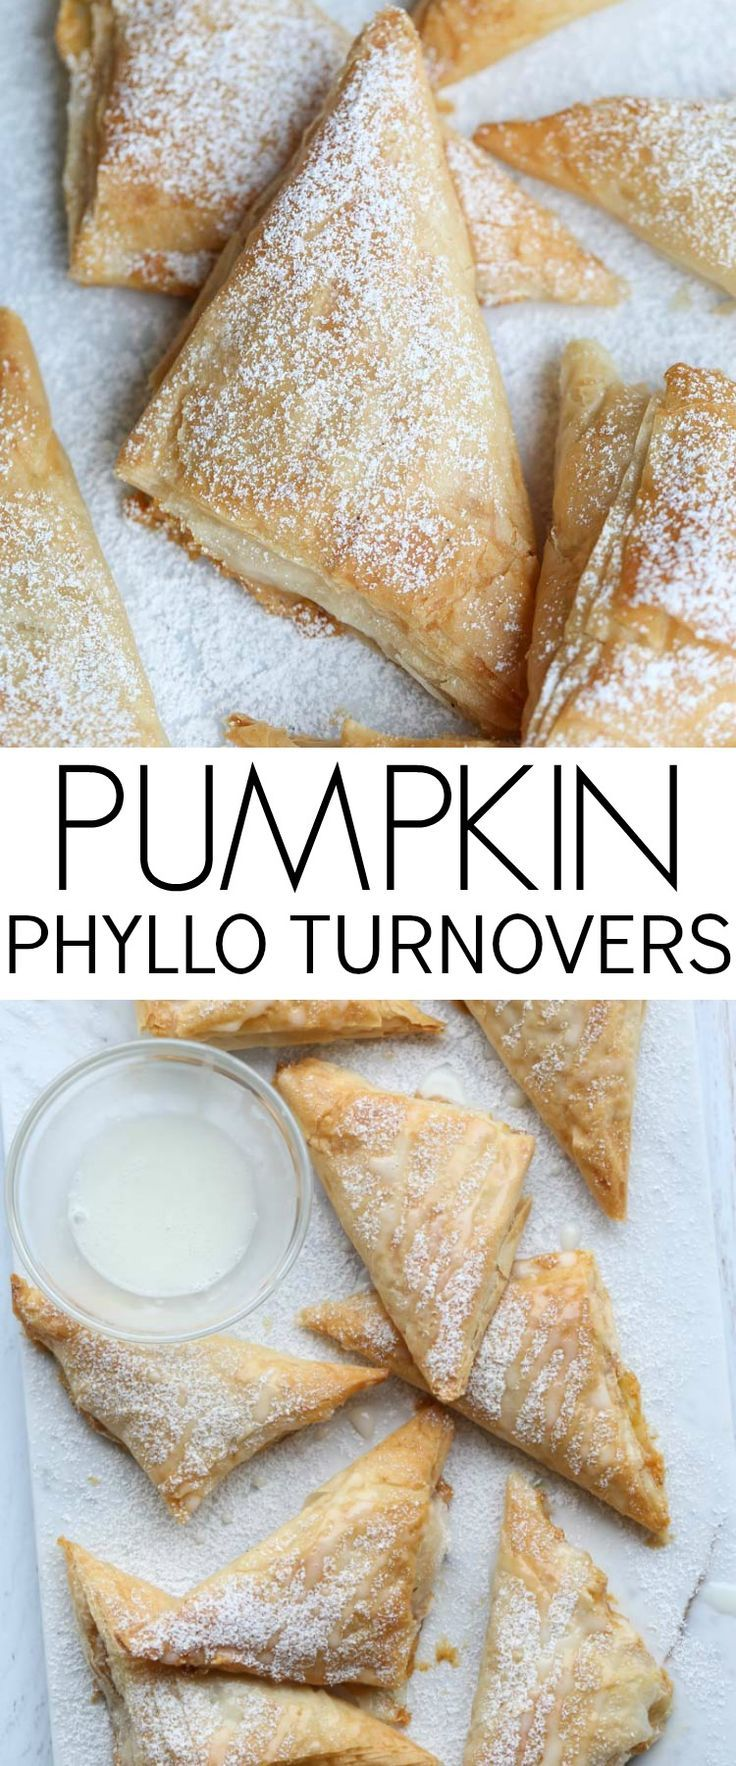 Pumpkin Phyllo (fillo) Turnovers Recipe.with goat cheese instead of cream cheese